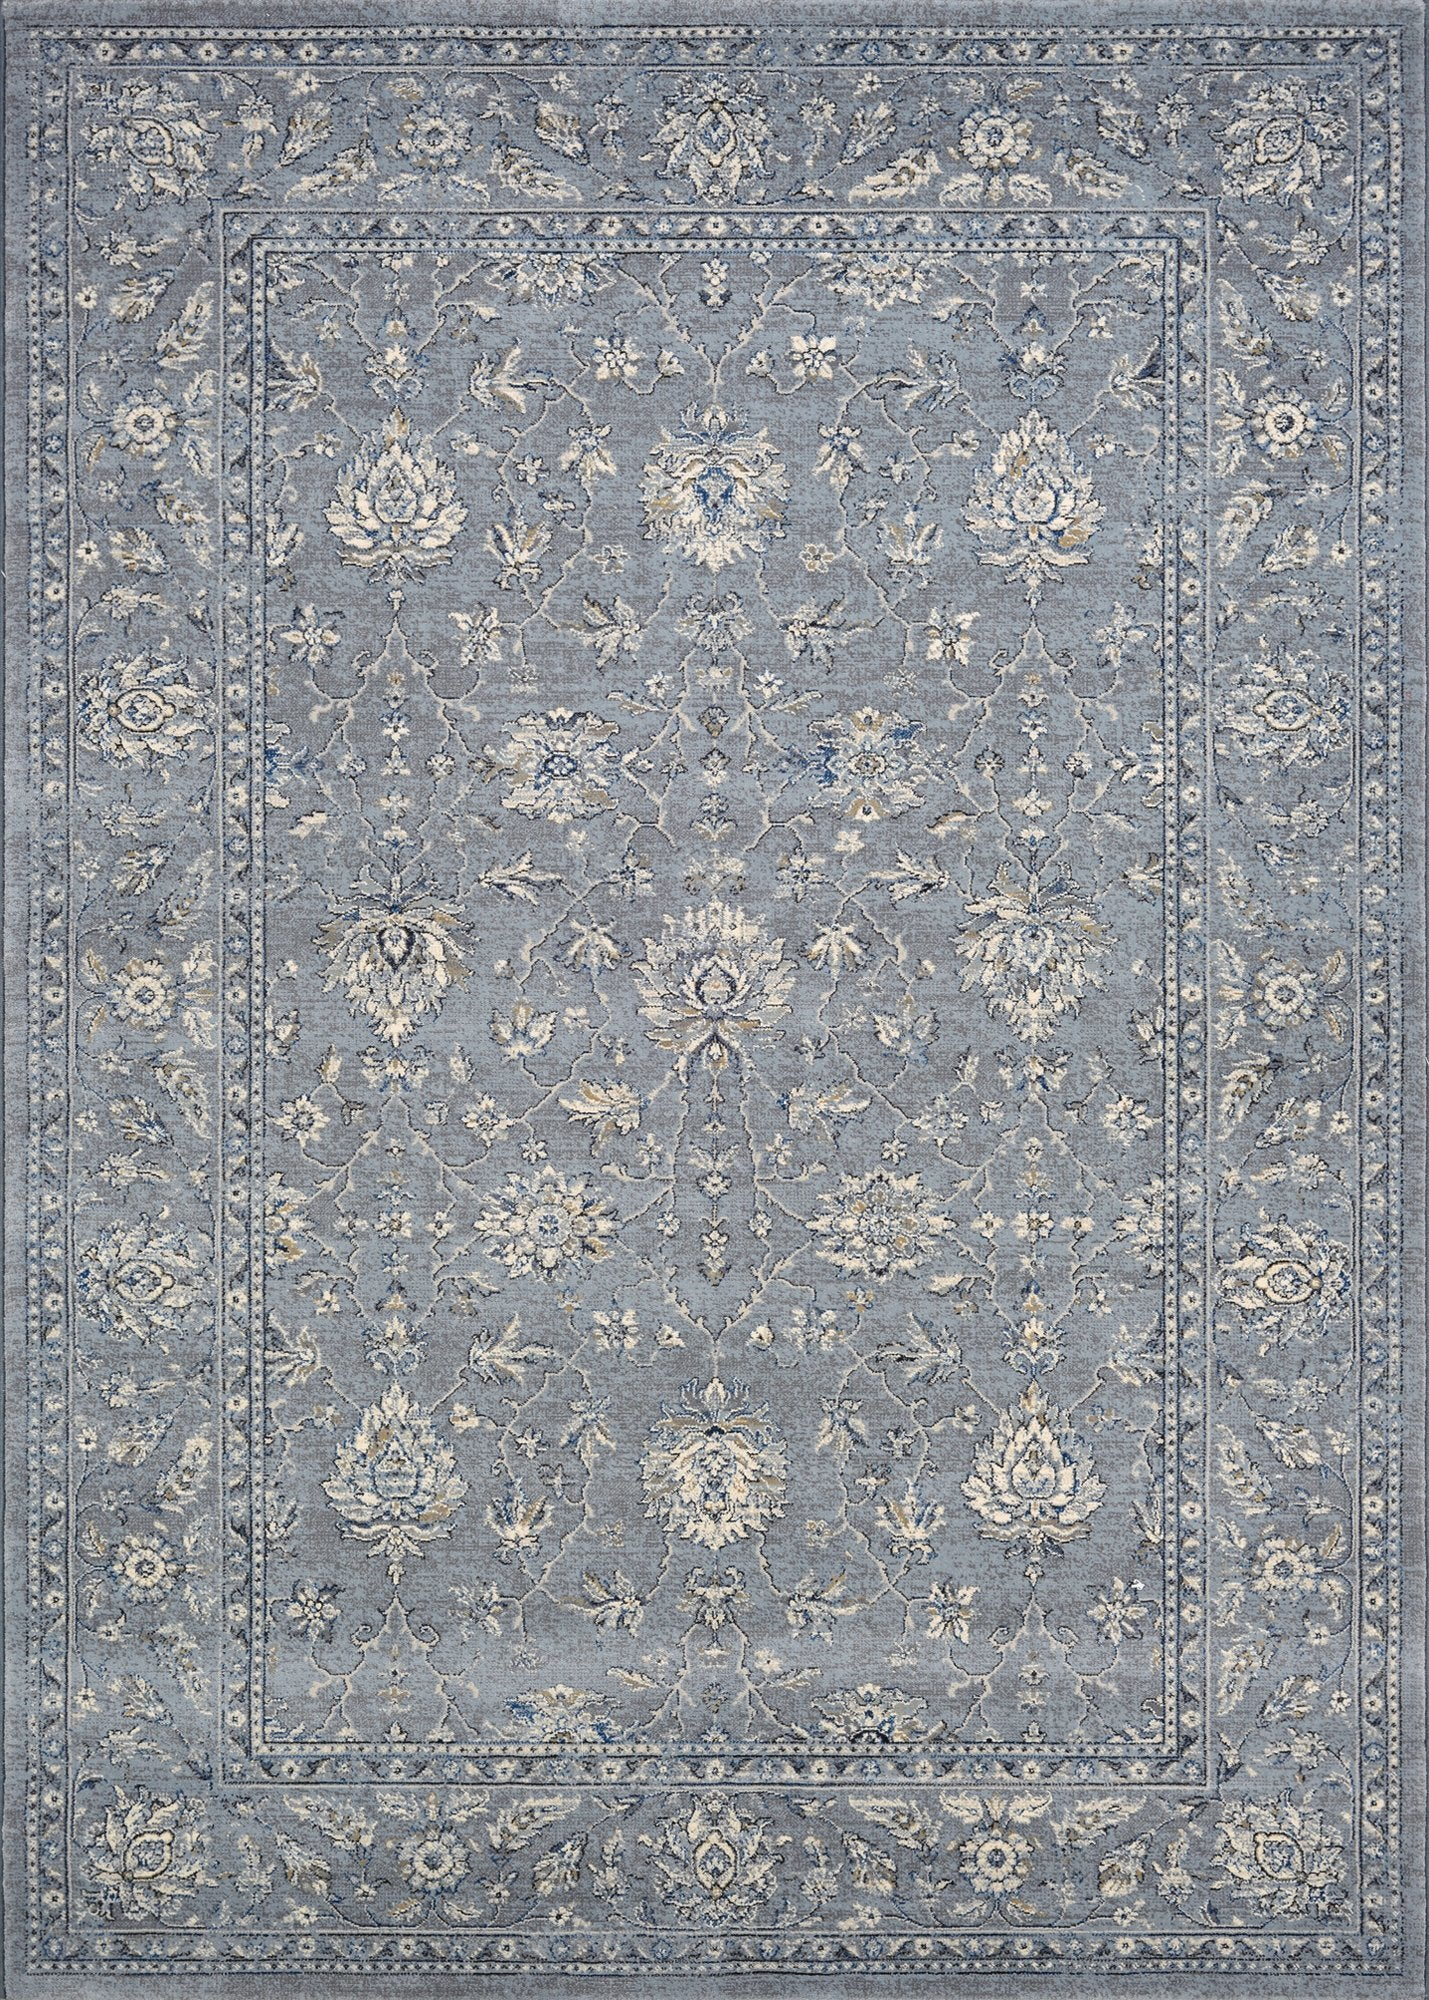 Couristan Area Rugs Sultan Treasures Area Rugs 7141-4646 Blue 7 Sizes 100% Poly Belgium